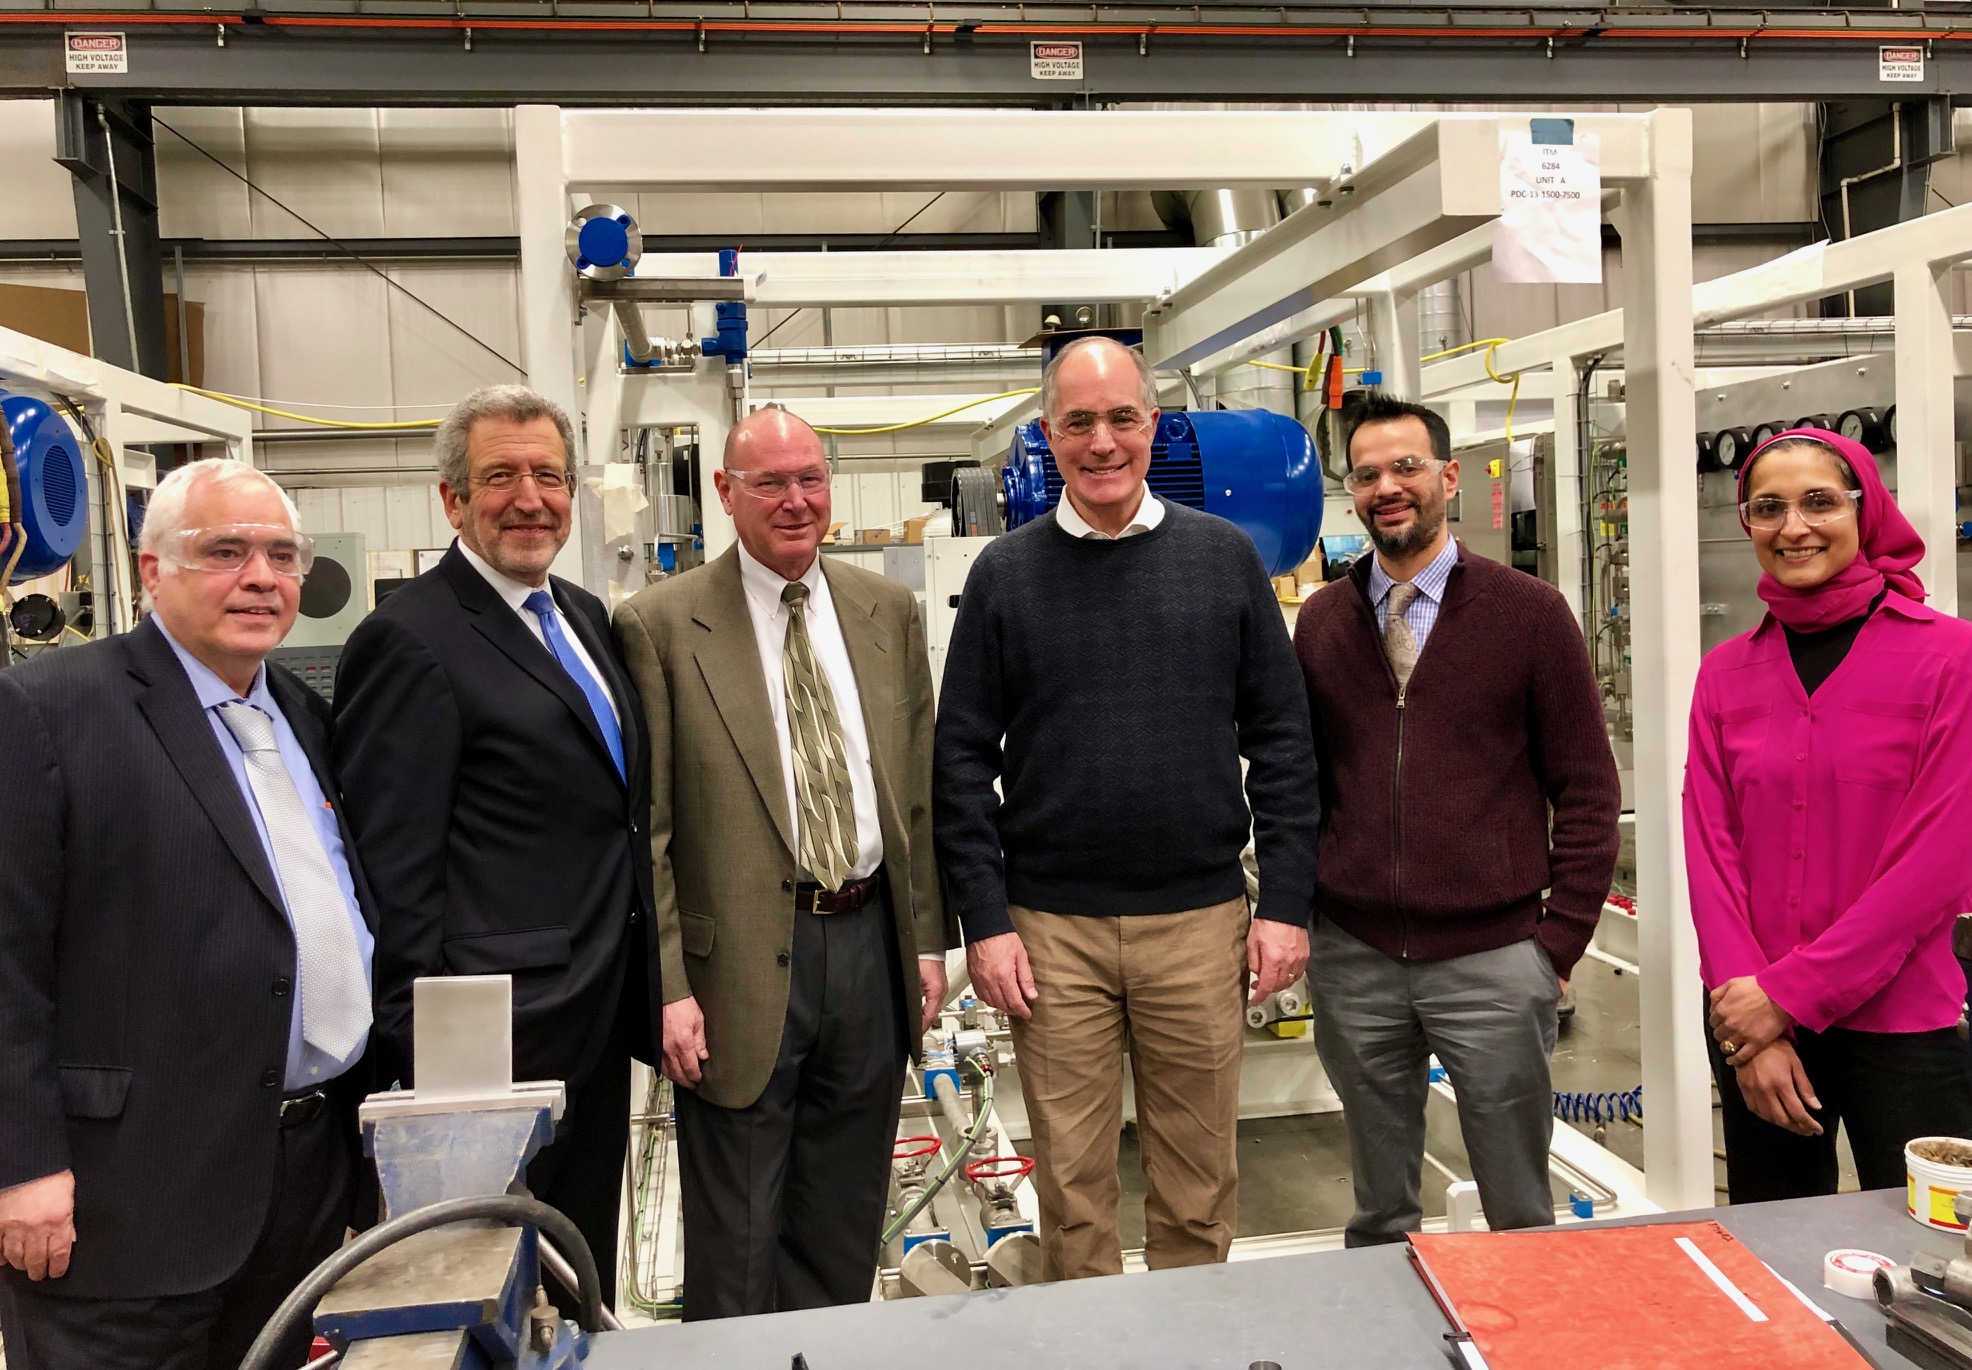 FCHEA President Morry Markowitz (second from left) and Senator Casey (third from right) on the floor of PDC Machines' manufacturing facility in Warminster.